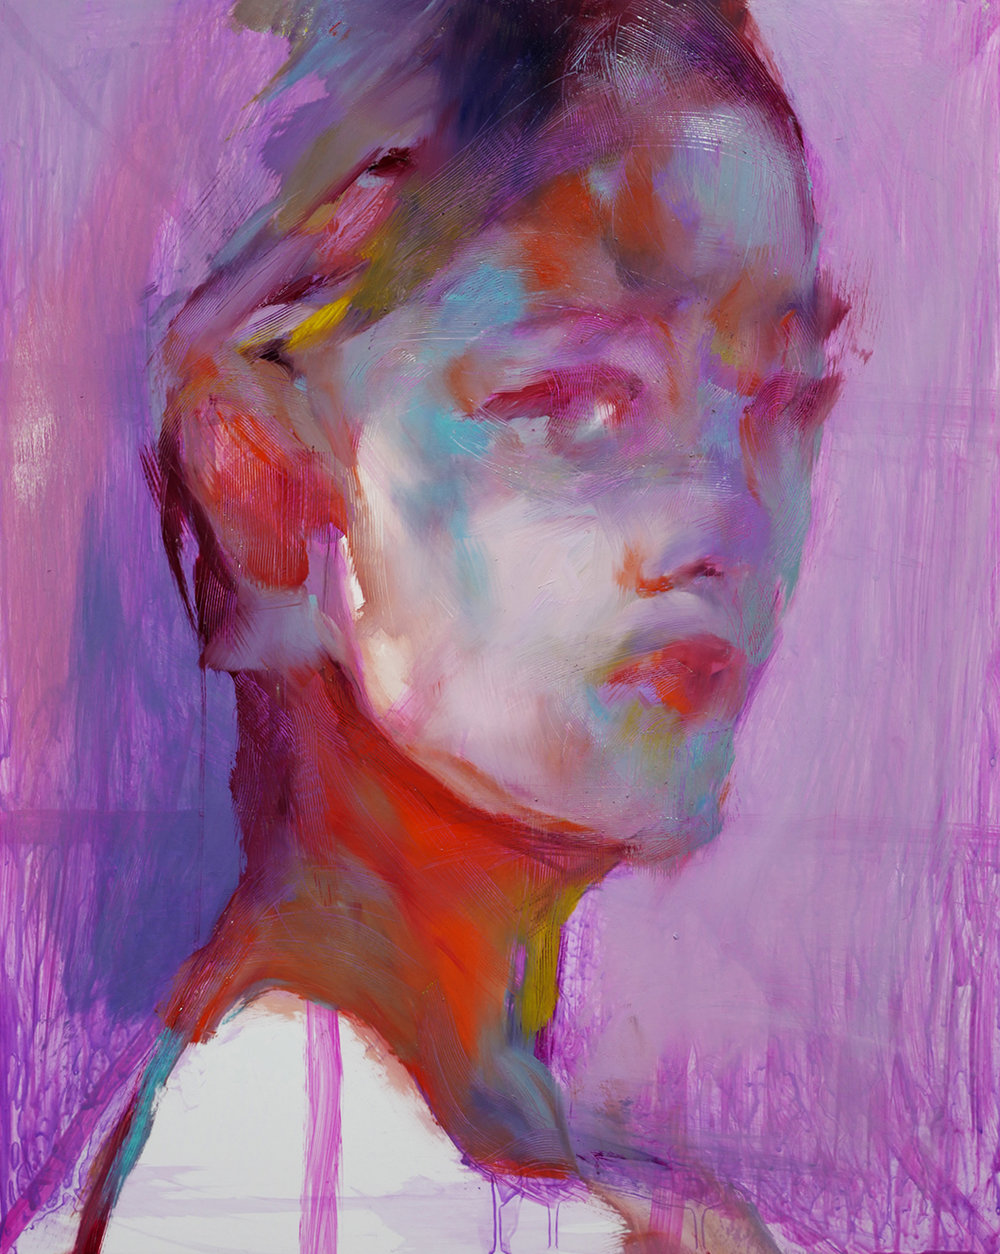 _05_03YanjunCheng_GirlPortrait_2018_Oil on Panel_2400.JPG